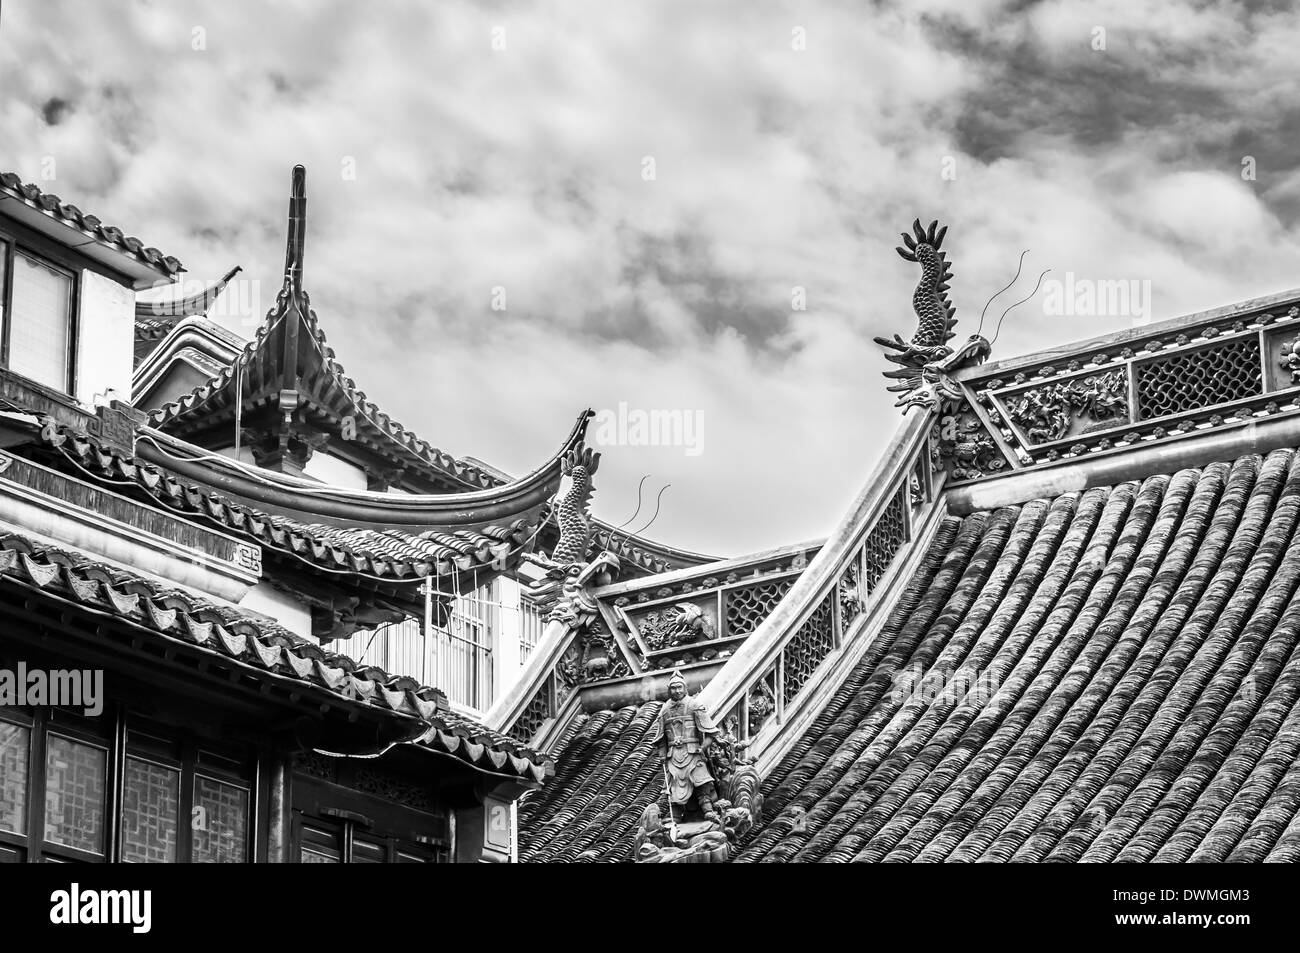 The traditional Chinese architecture at Yuyuan Gardens in Shanghai, China. - Stock Image